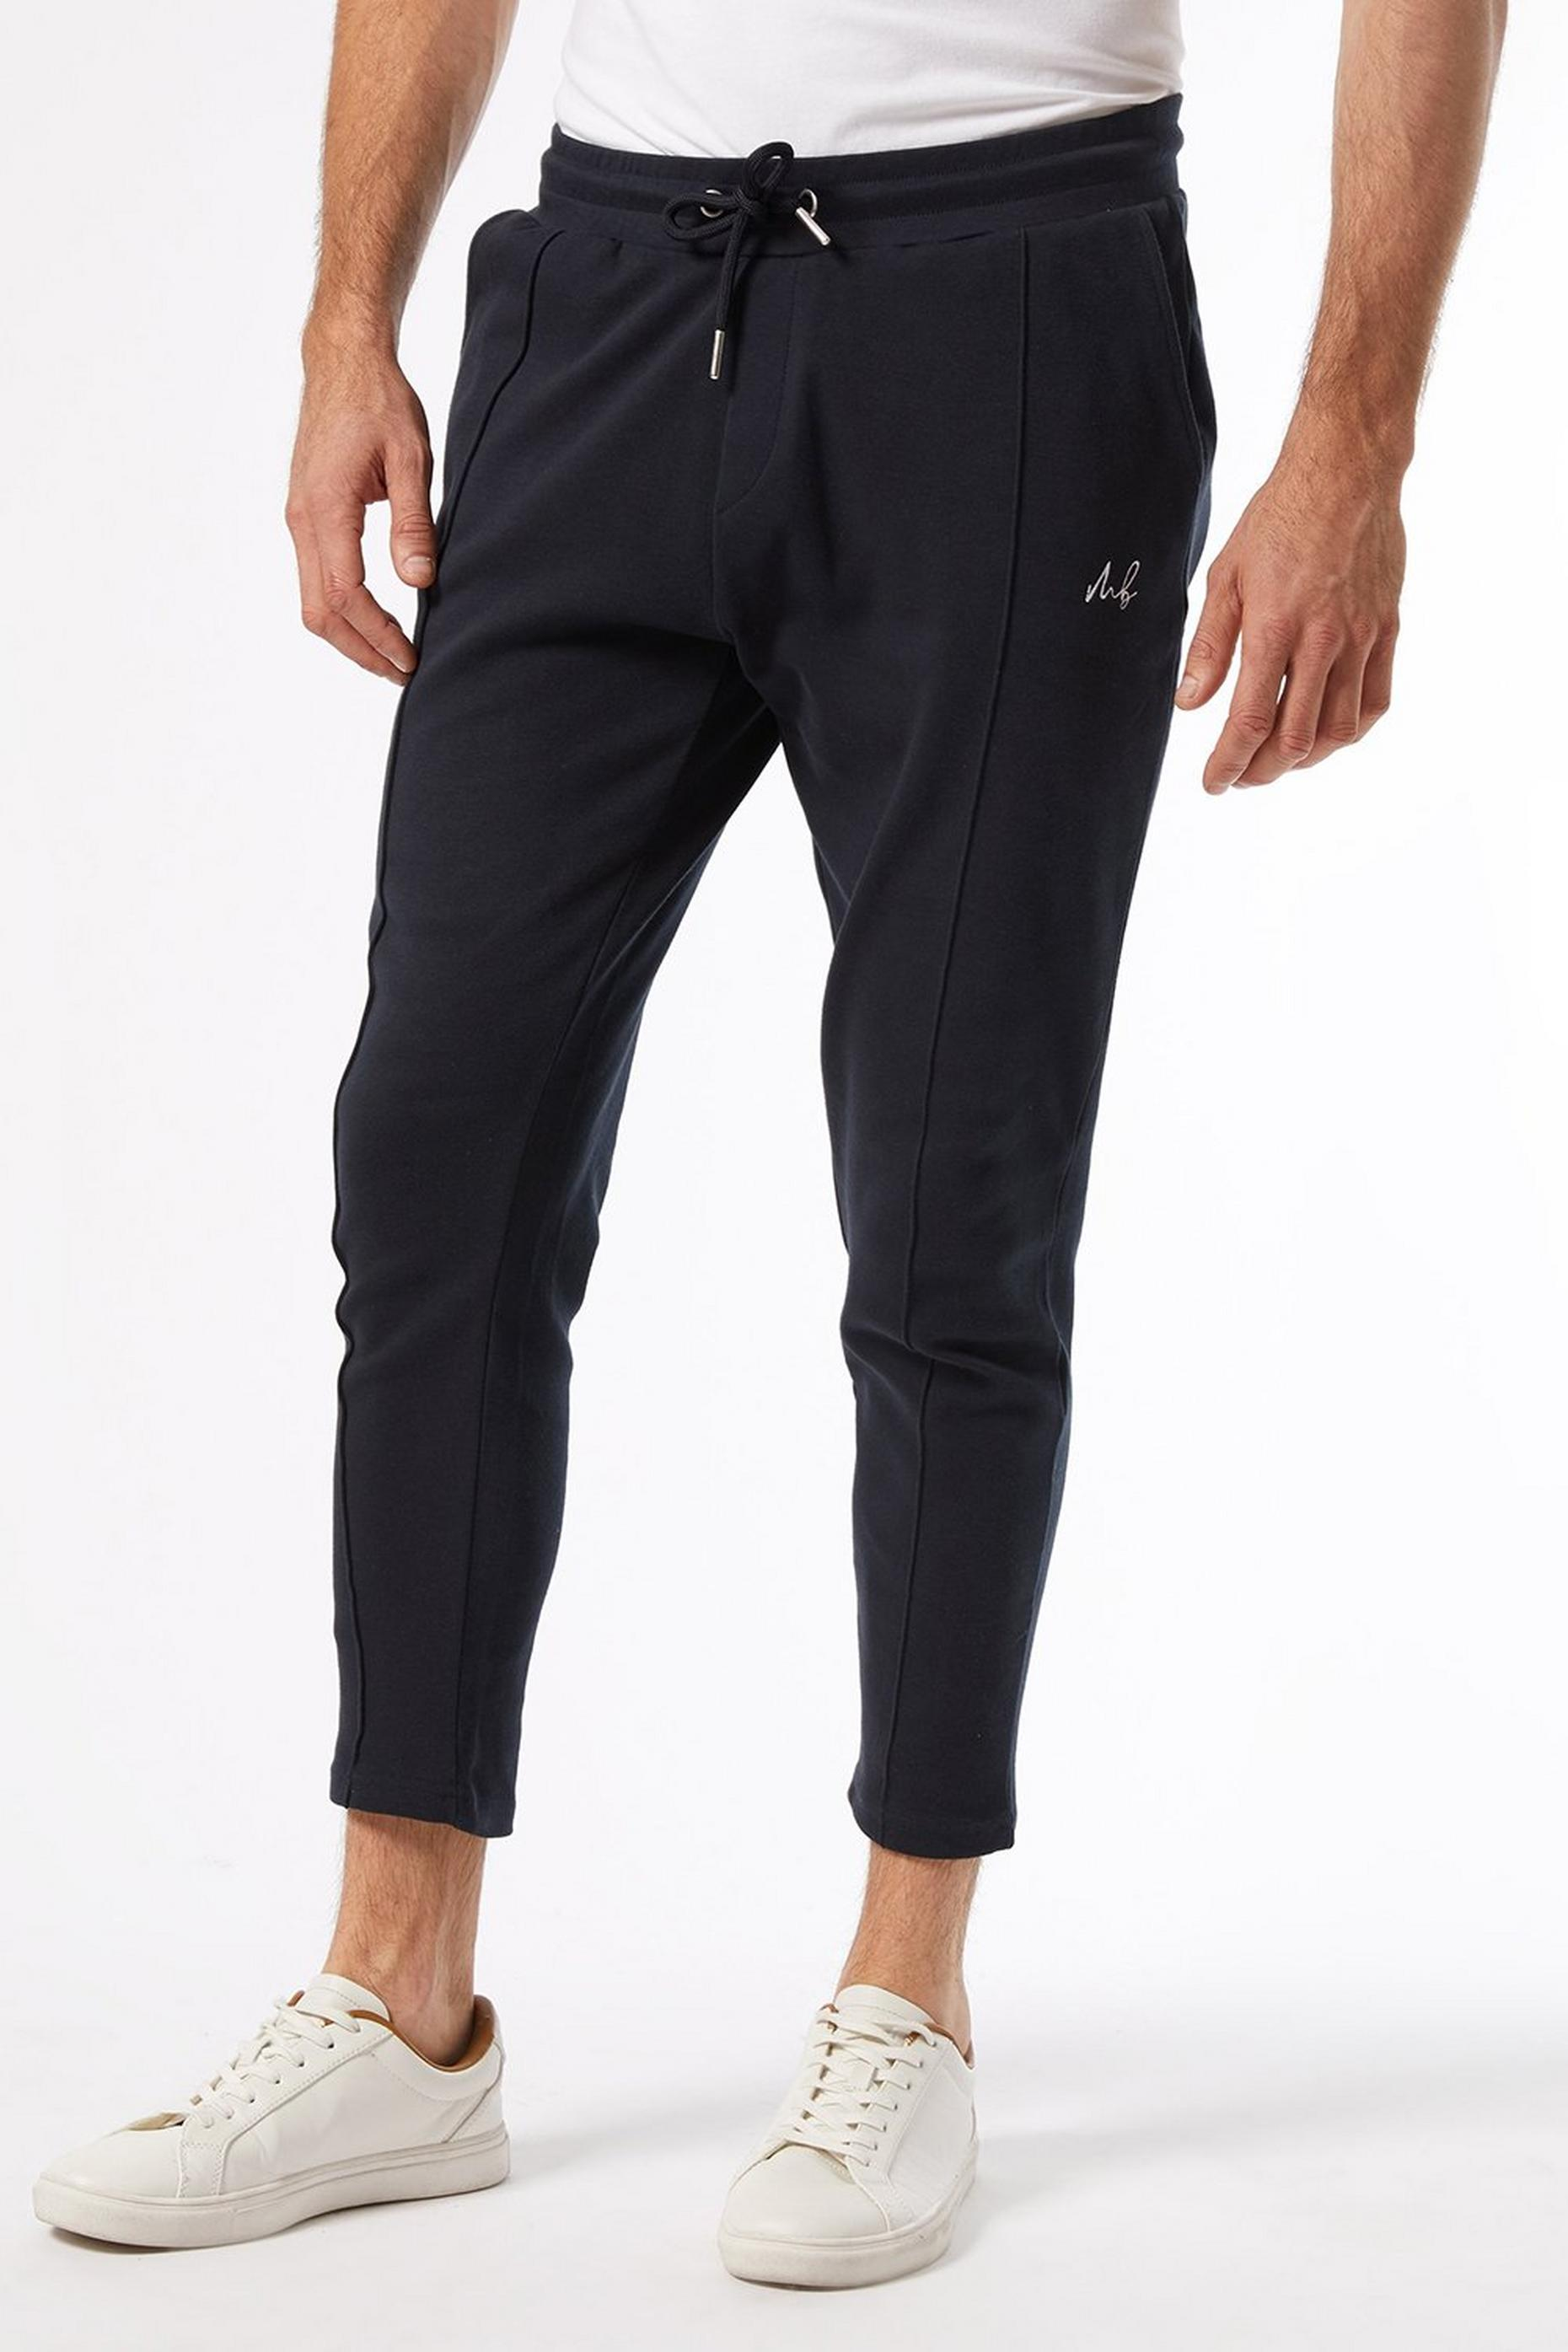 MB Collection Navy Pintuck Joggers